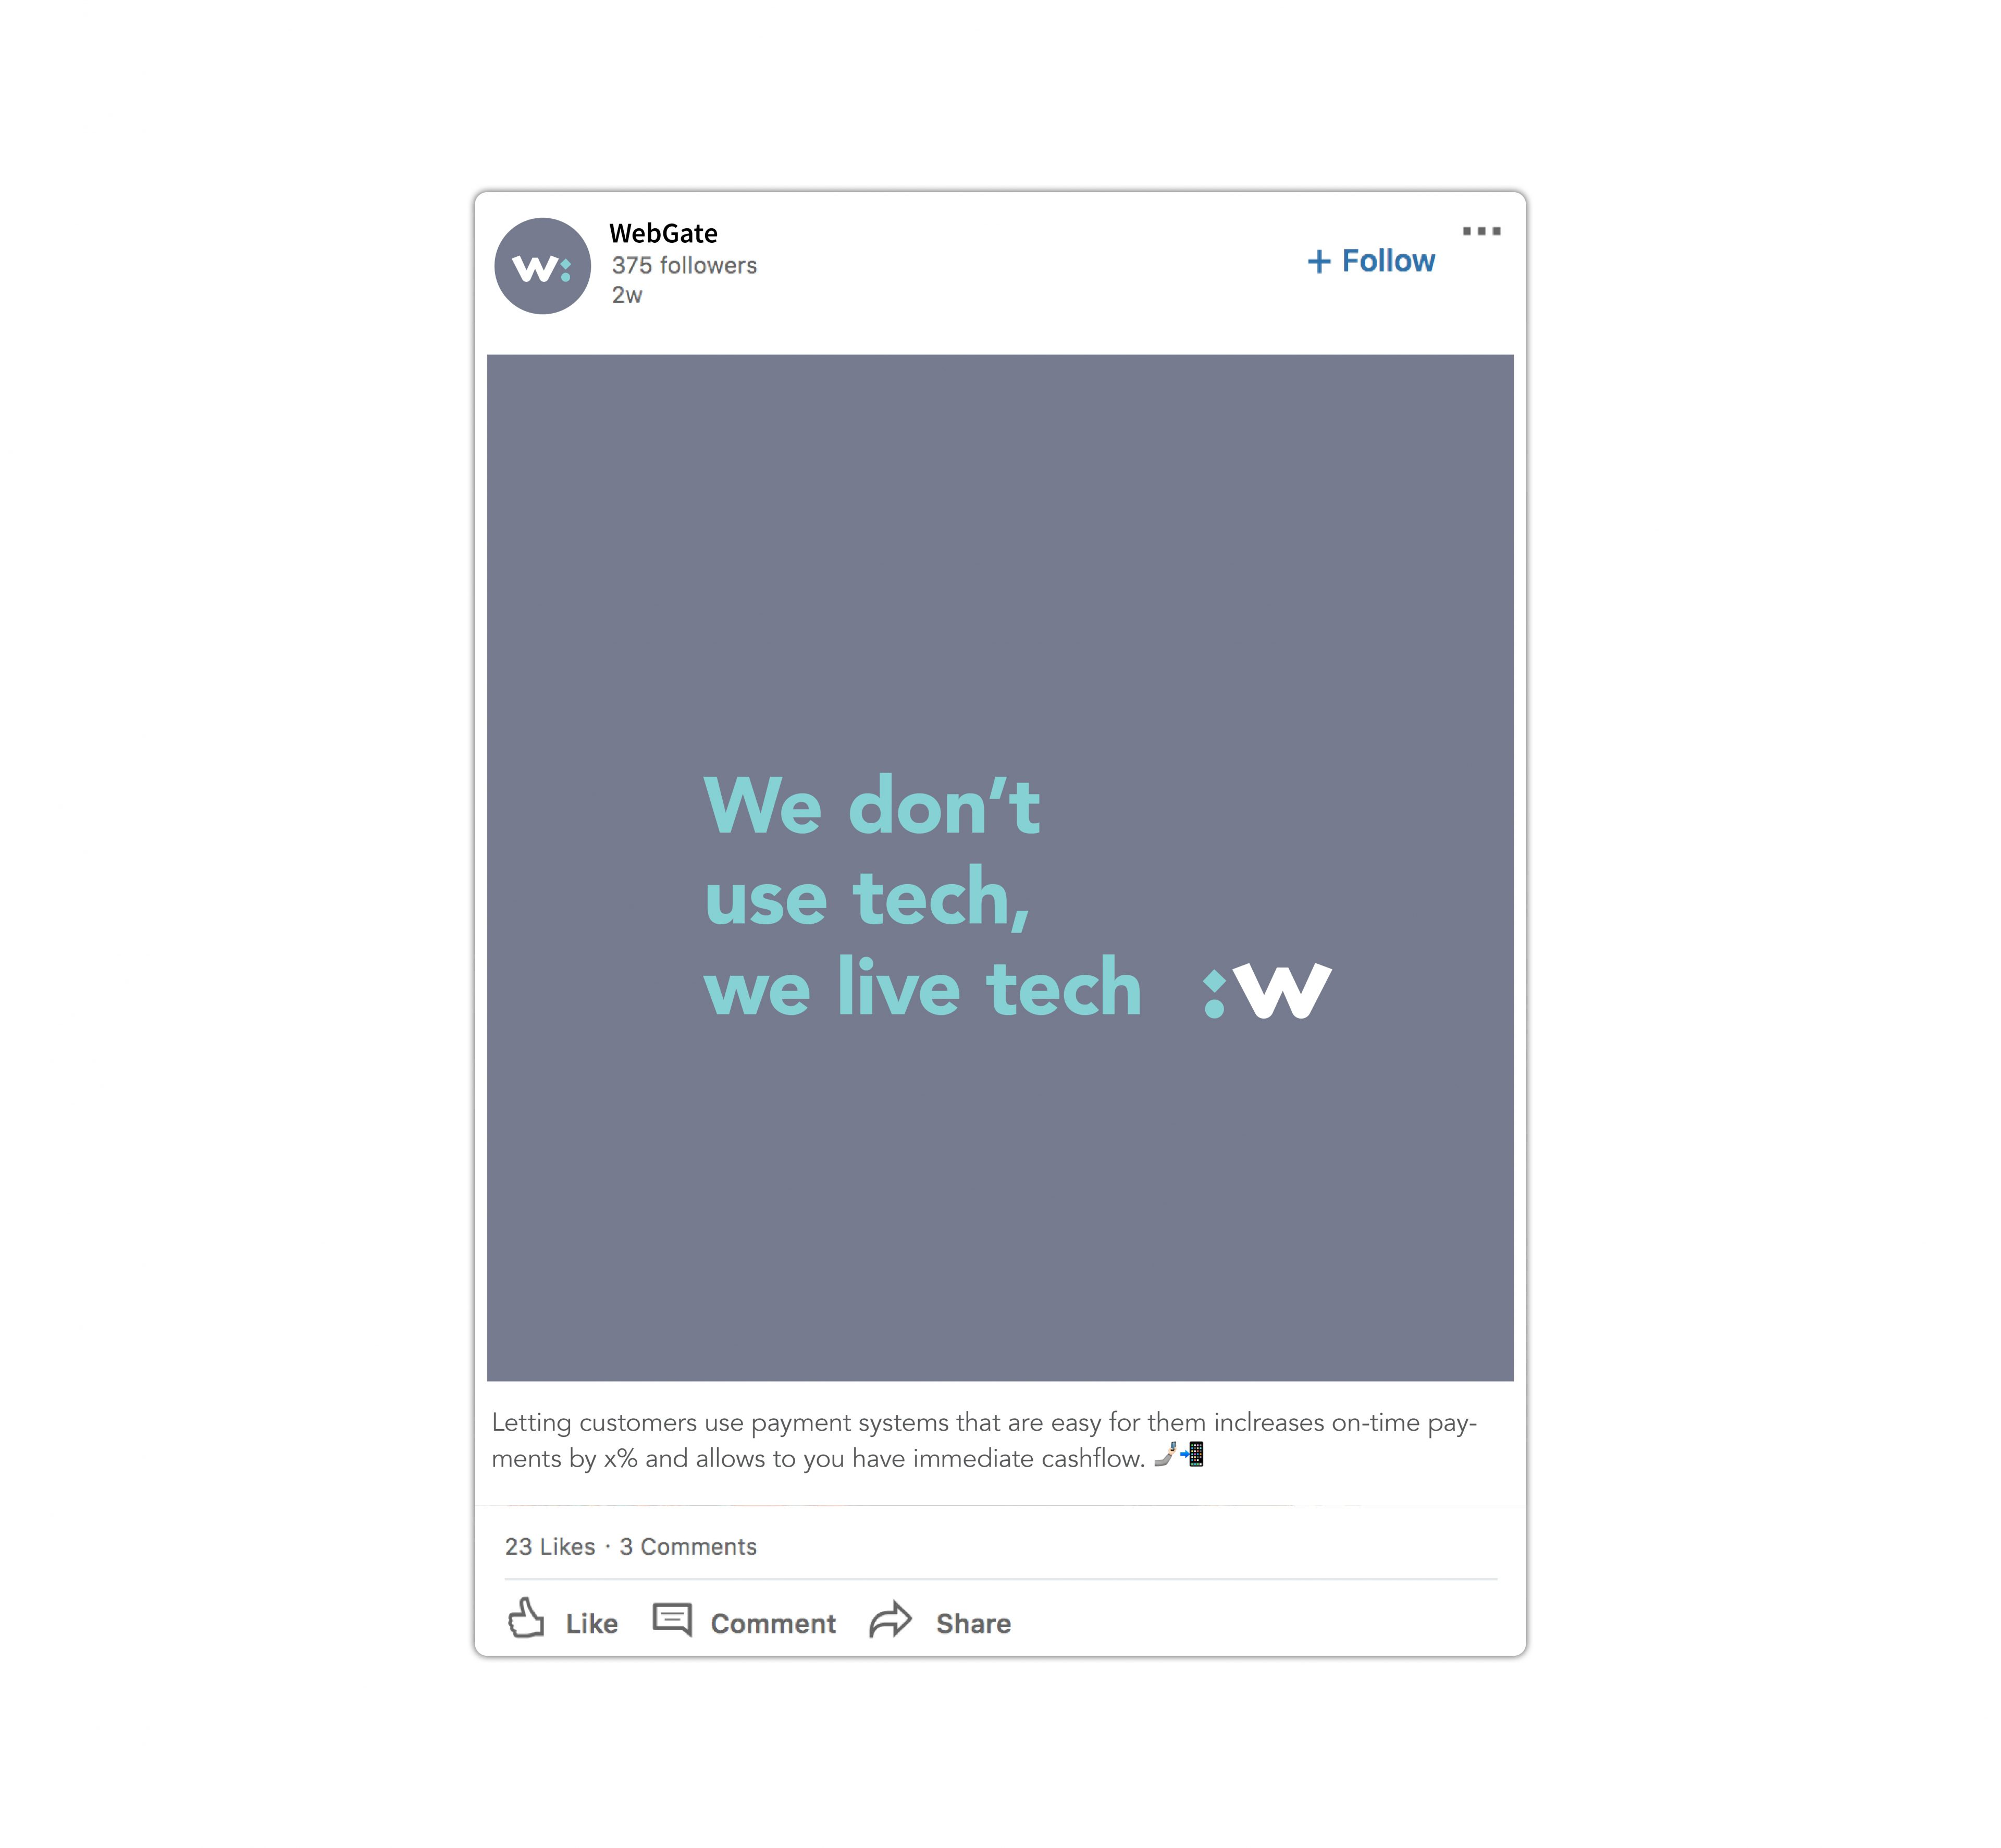 Social media collateral design for Webgate tech brand that reads we don't use tech, we live tech